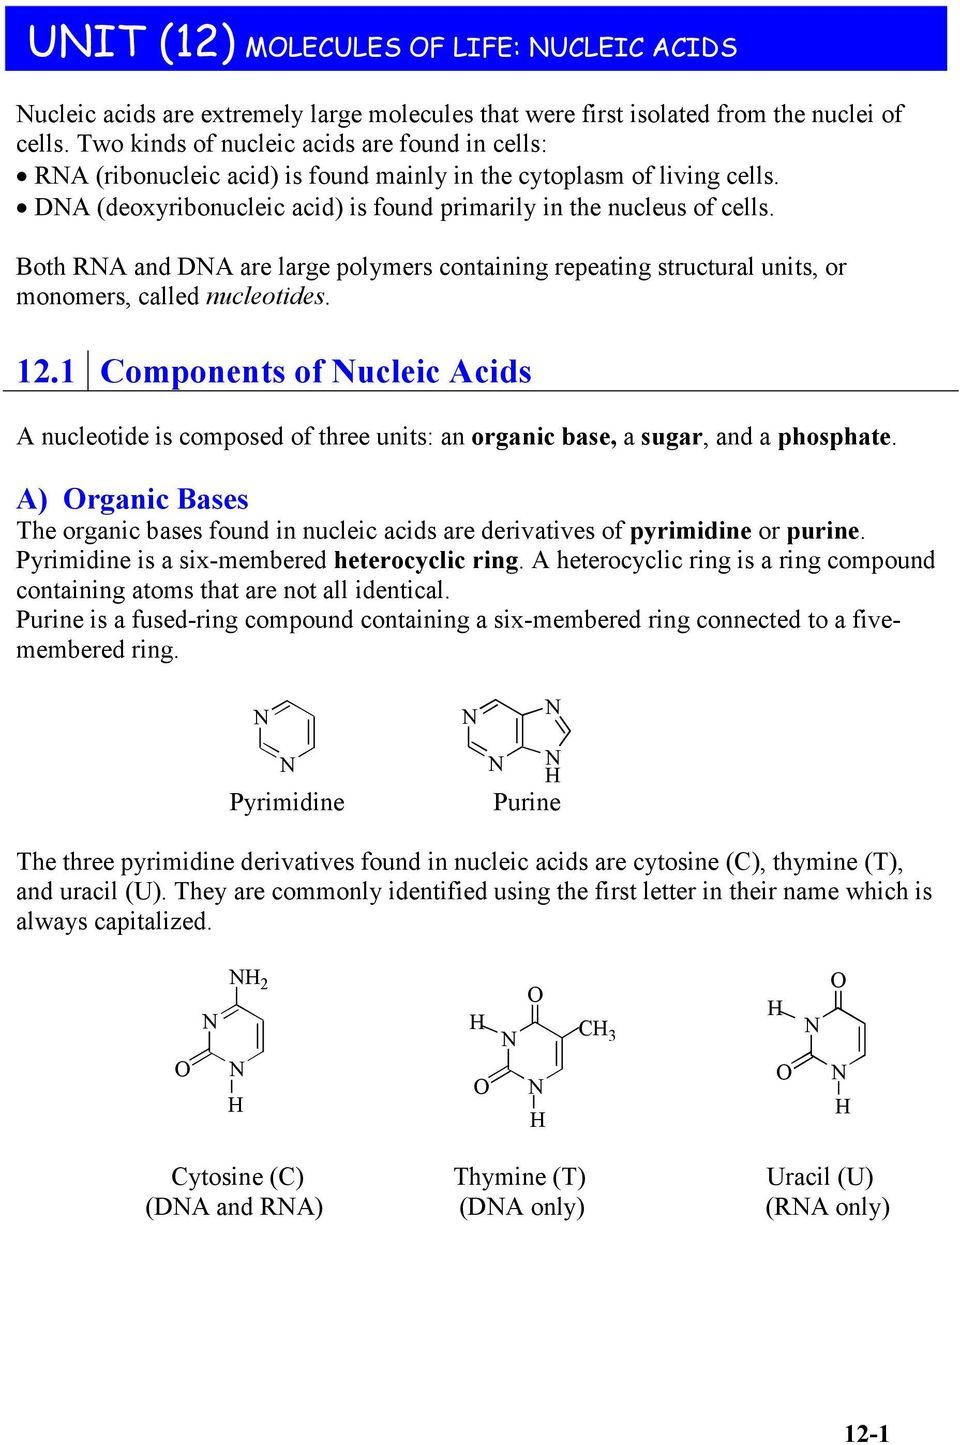 Both RA and DA are large polymers containing repeating structural units, or monomers, called nucleotides. 12.